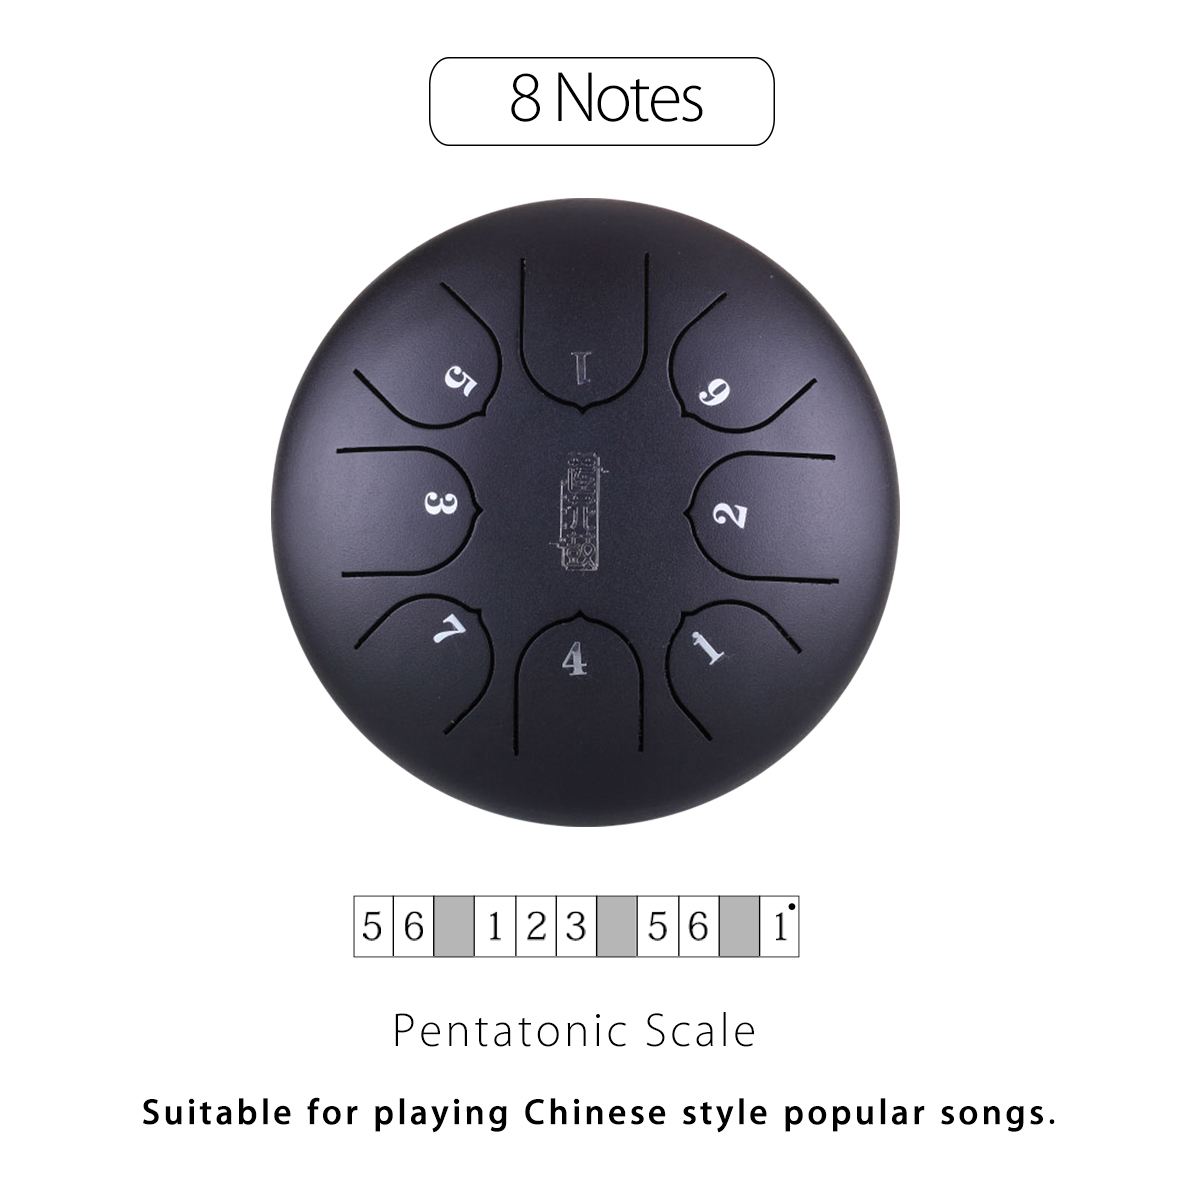 small resolution of  secondary tuning 99 pitch can be used as a musical instrument perfect for yoga and meditation help you relax rb9kflvoe6sab3 xaatz1pfskmk398